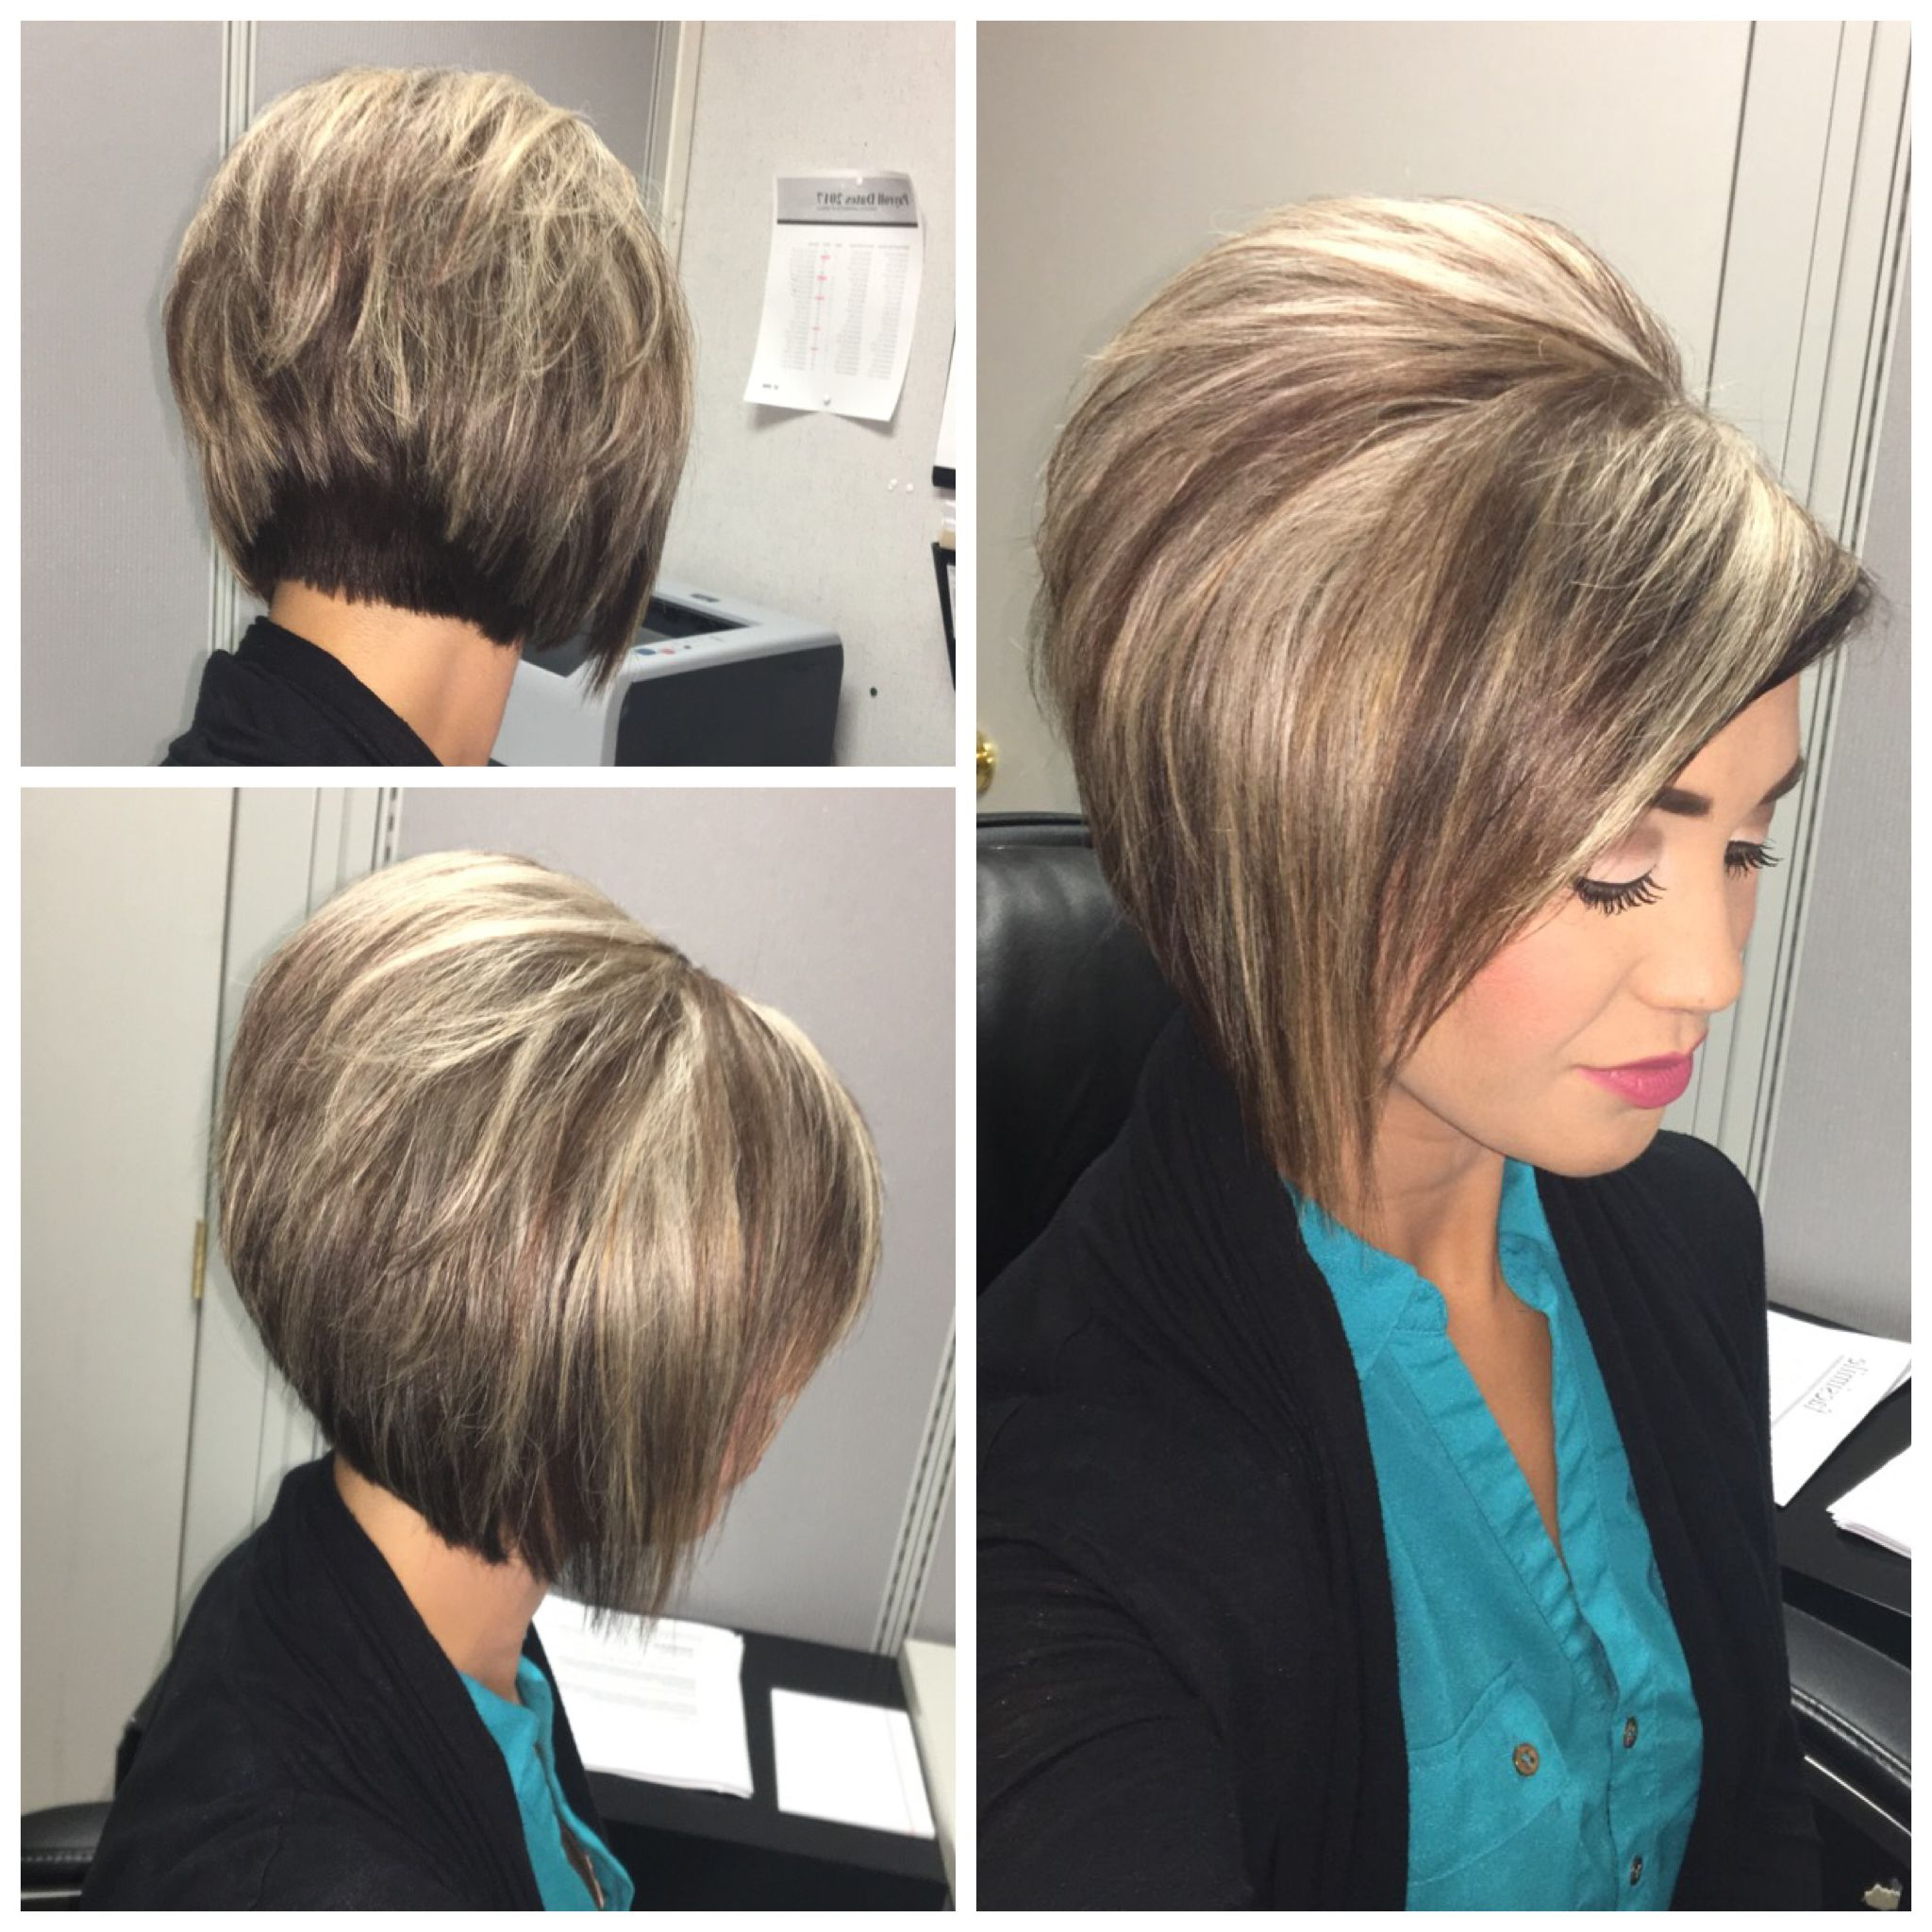 Stacked Bob Haircut With Blonde Highlights On Dark Hair | Hair In Regarding Pixie Bob Hairstyles With Soft Blonde Highlights (View 2 of 20)